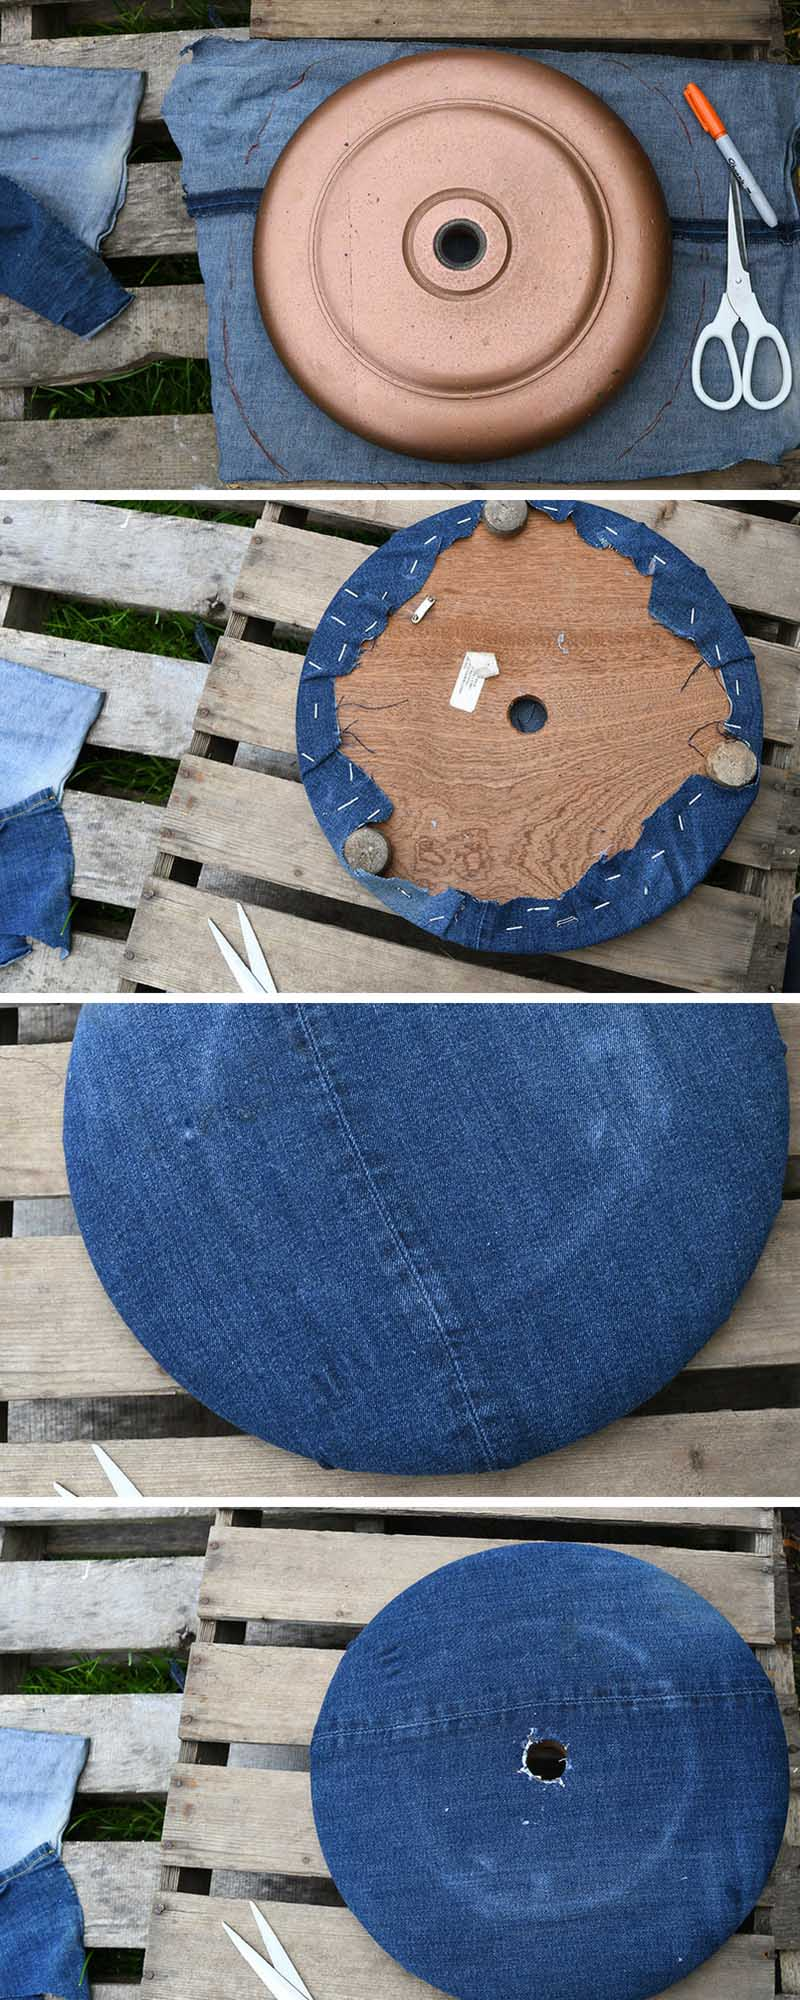 Covering the base of a floor lamp in denim